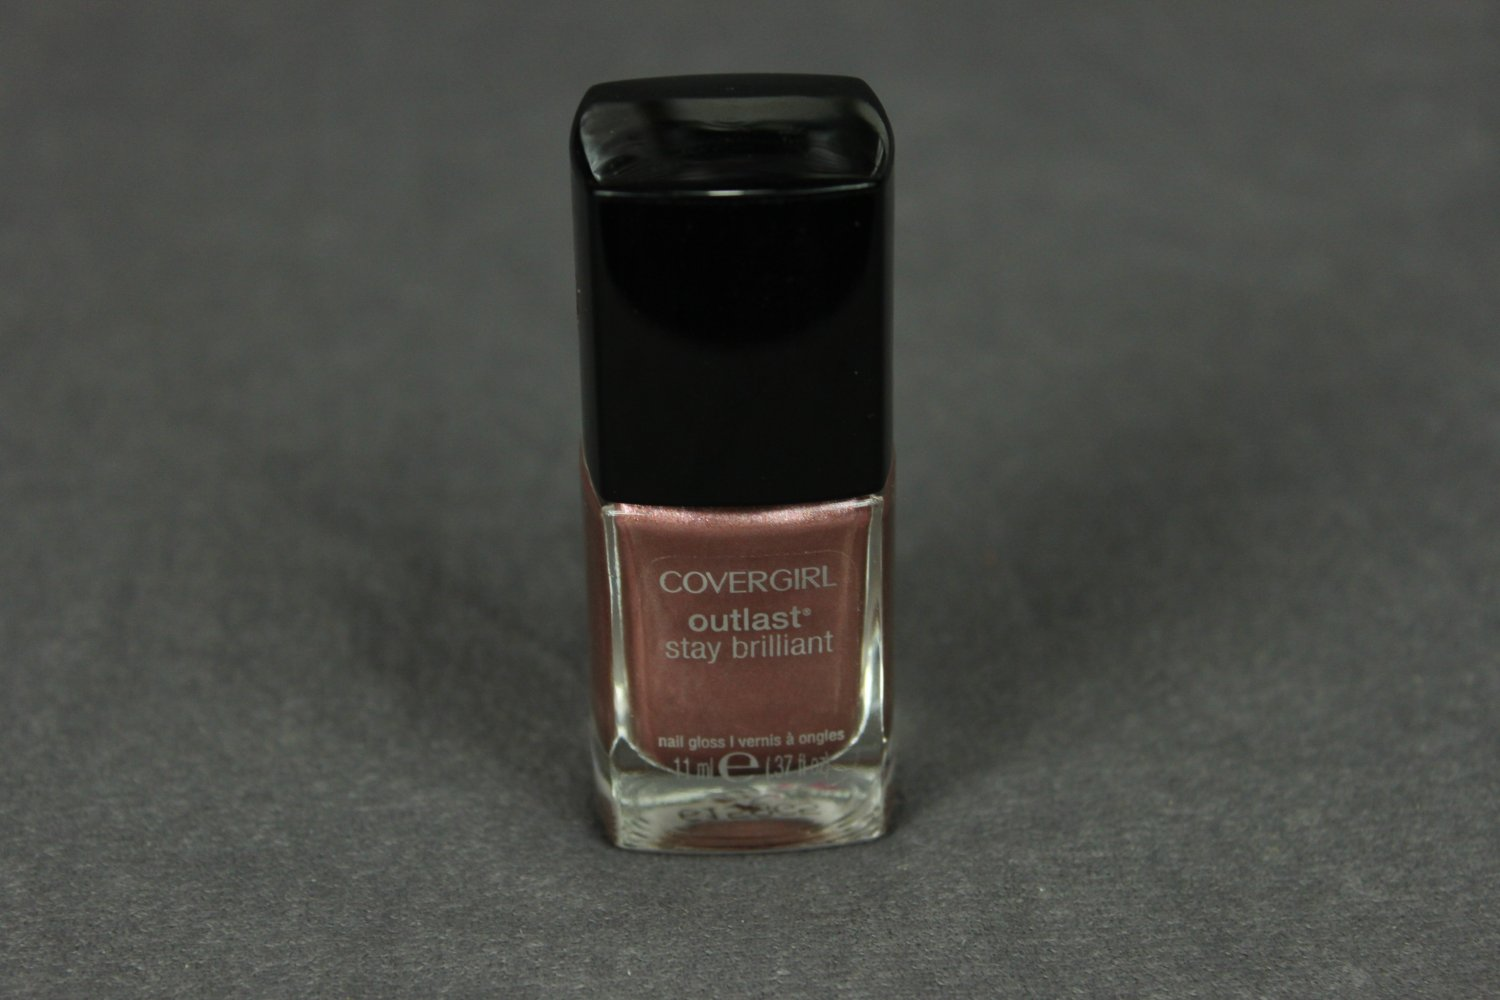 CoverGirl Nail Polish Outlast Stay Brilliant BEING BLONDE Nail Gloss